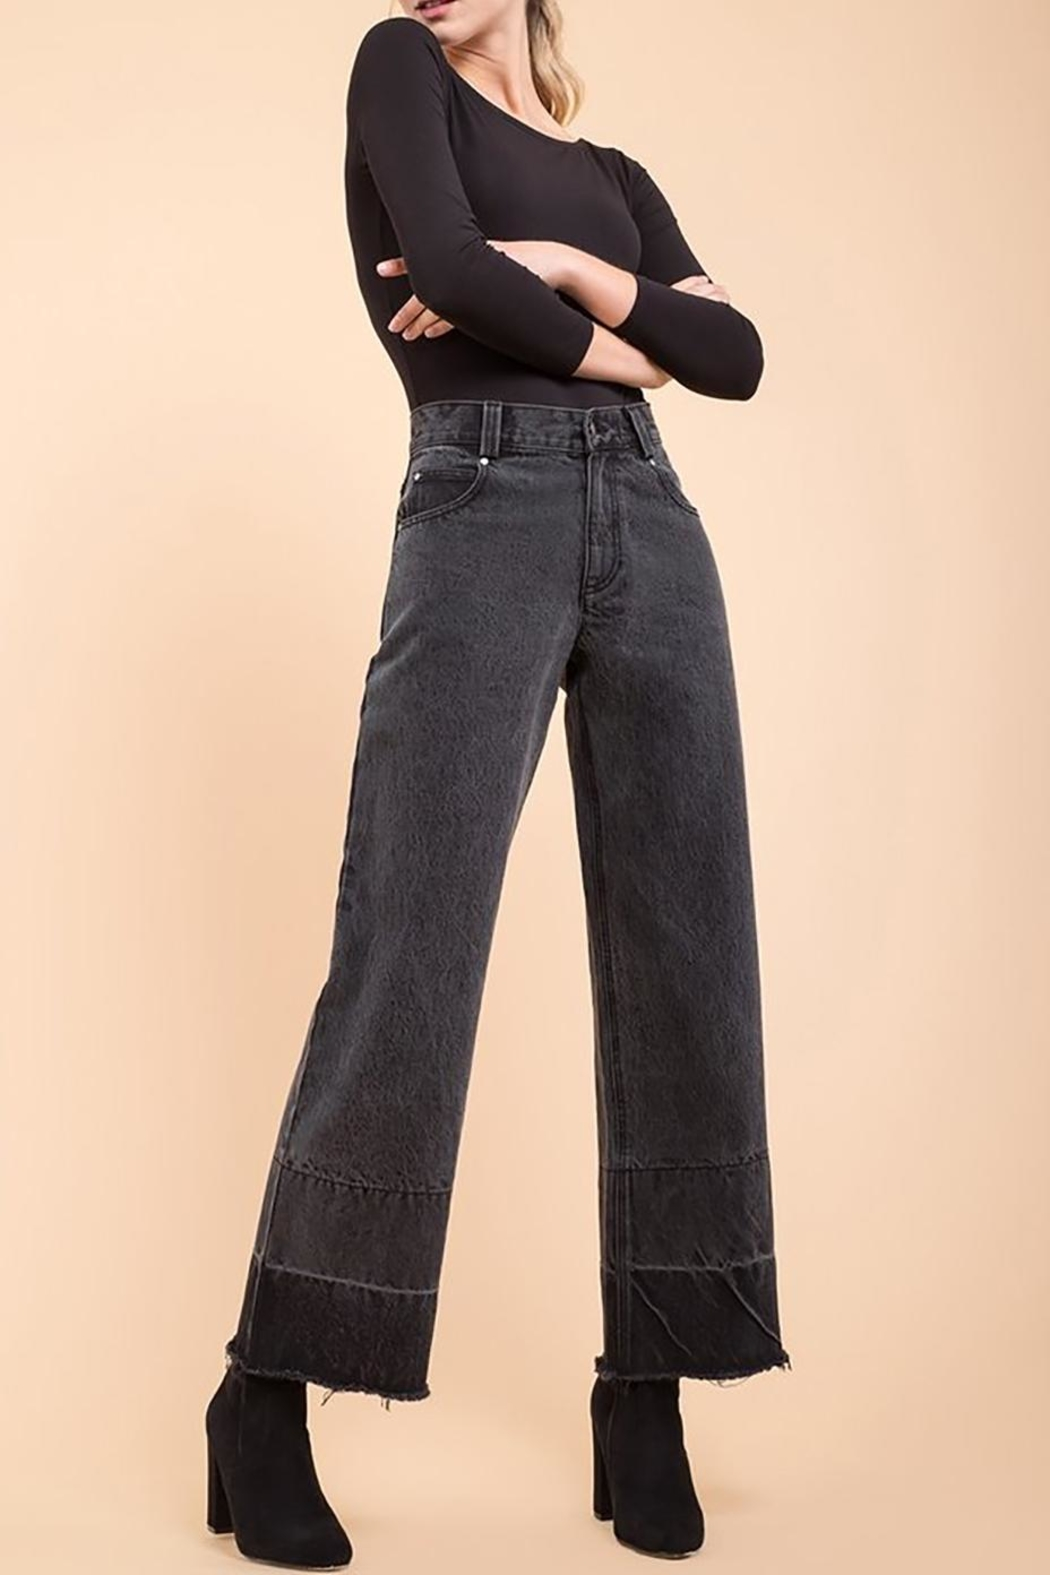 EVIDNT Two-Tone Wide-Leg Jeans - Main Image